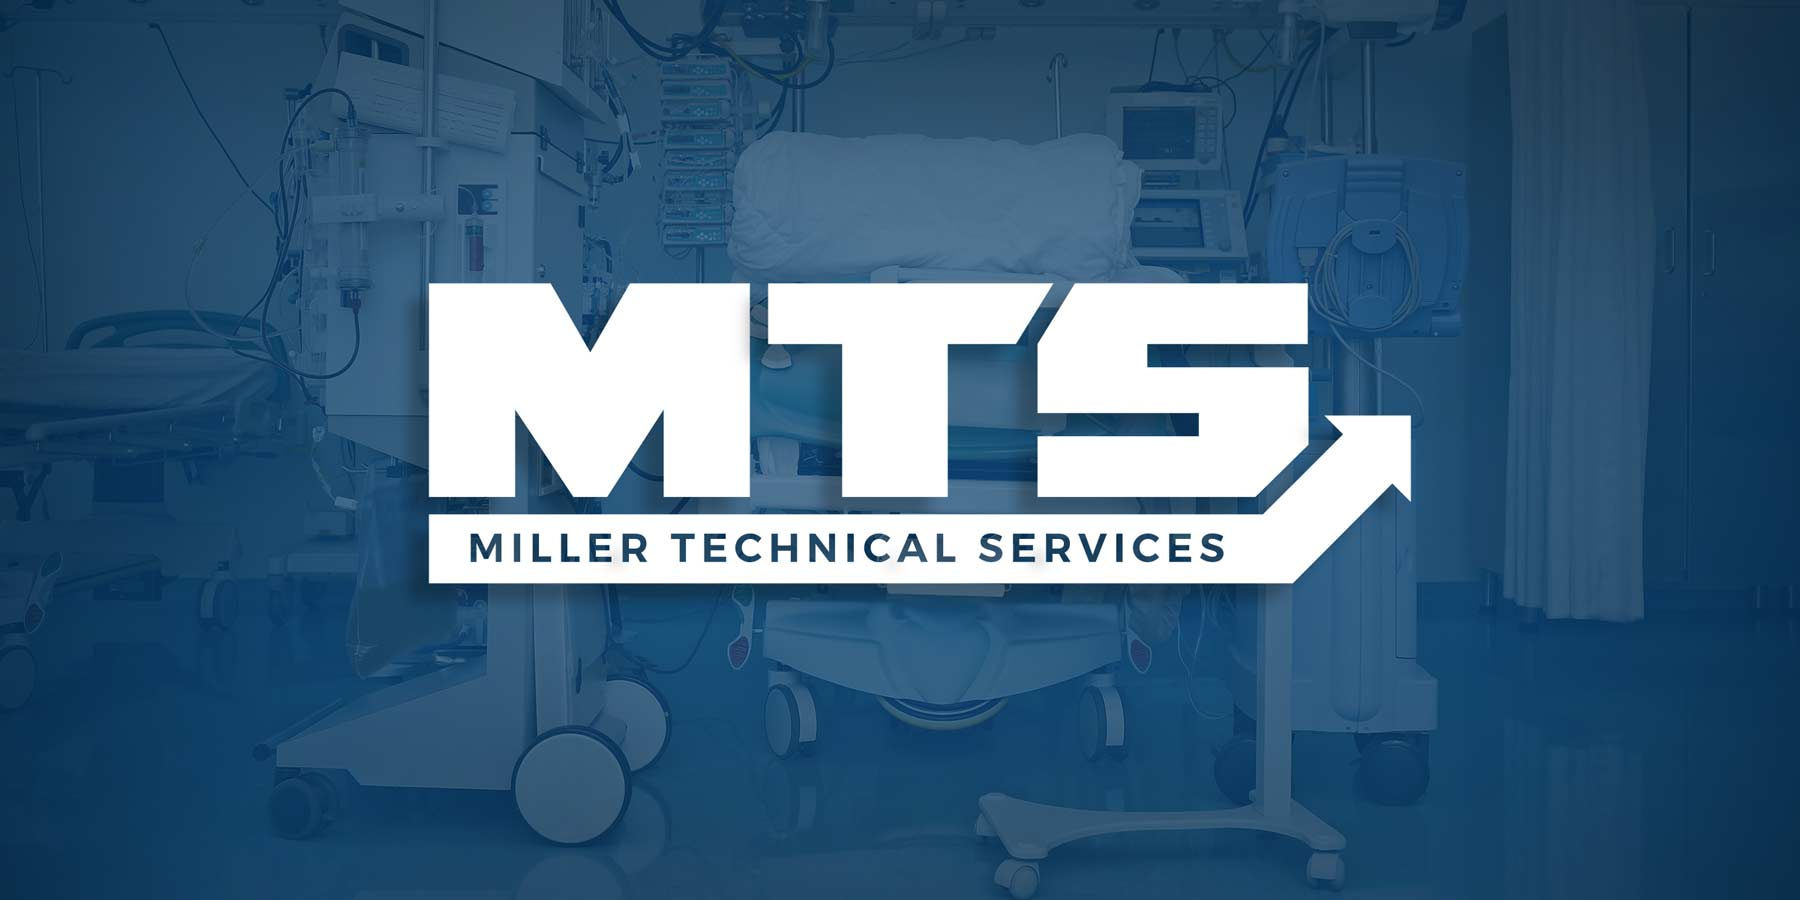 Miller Technical Services